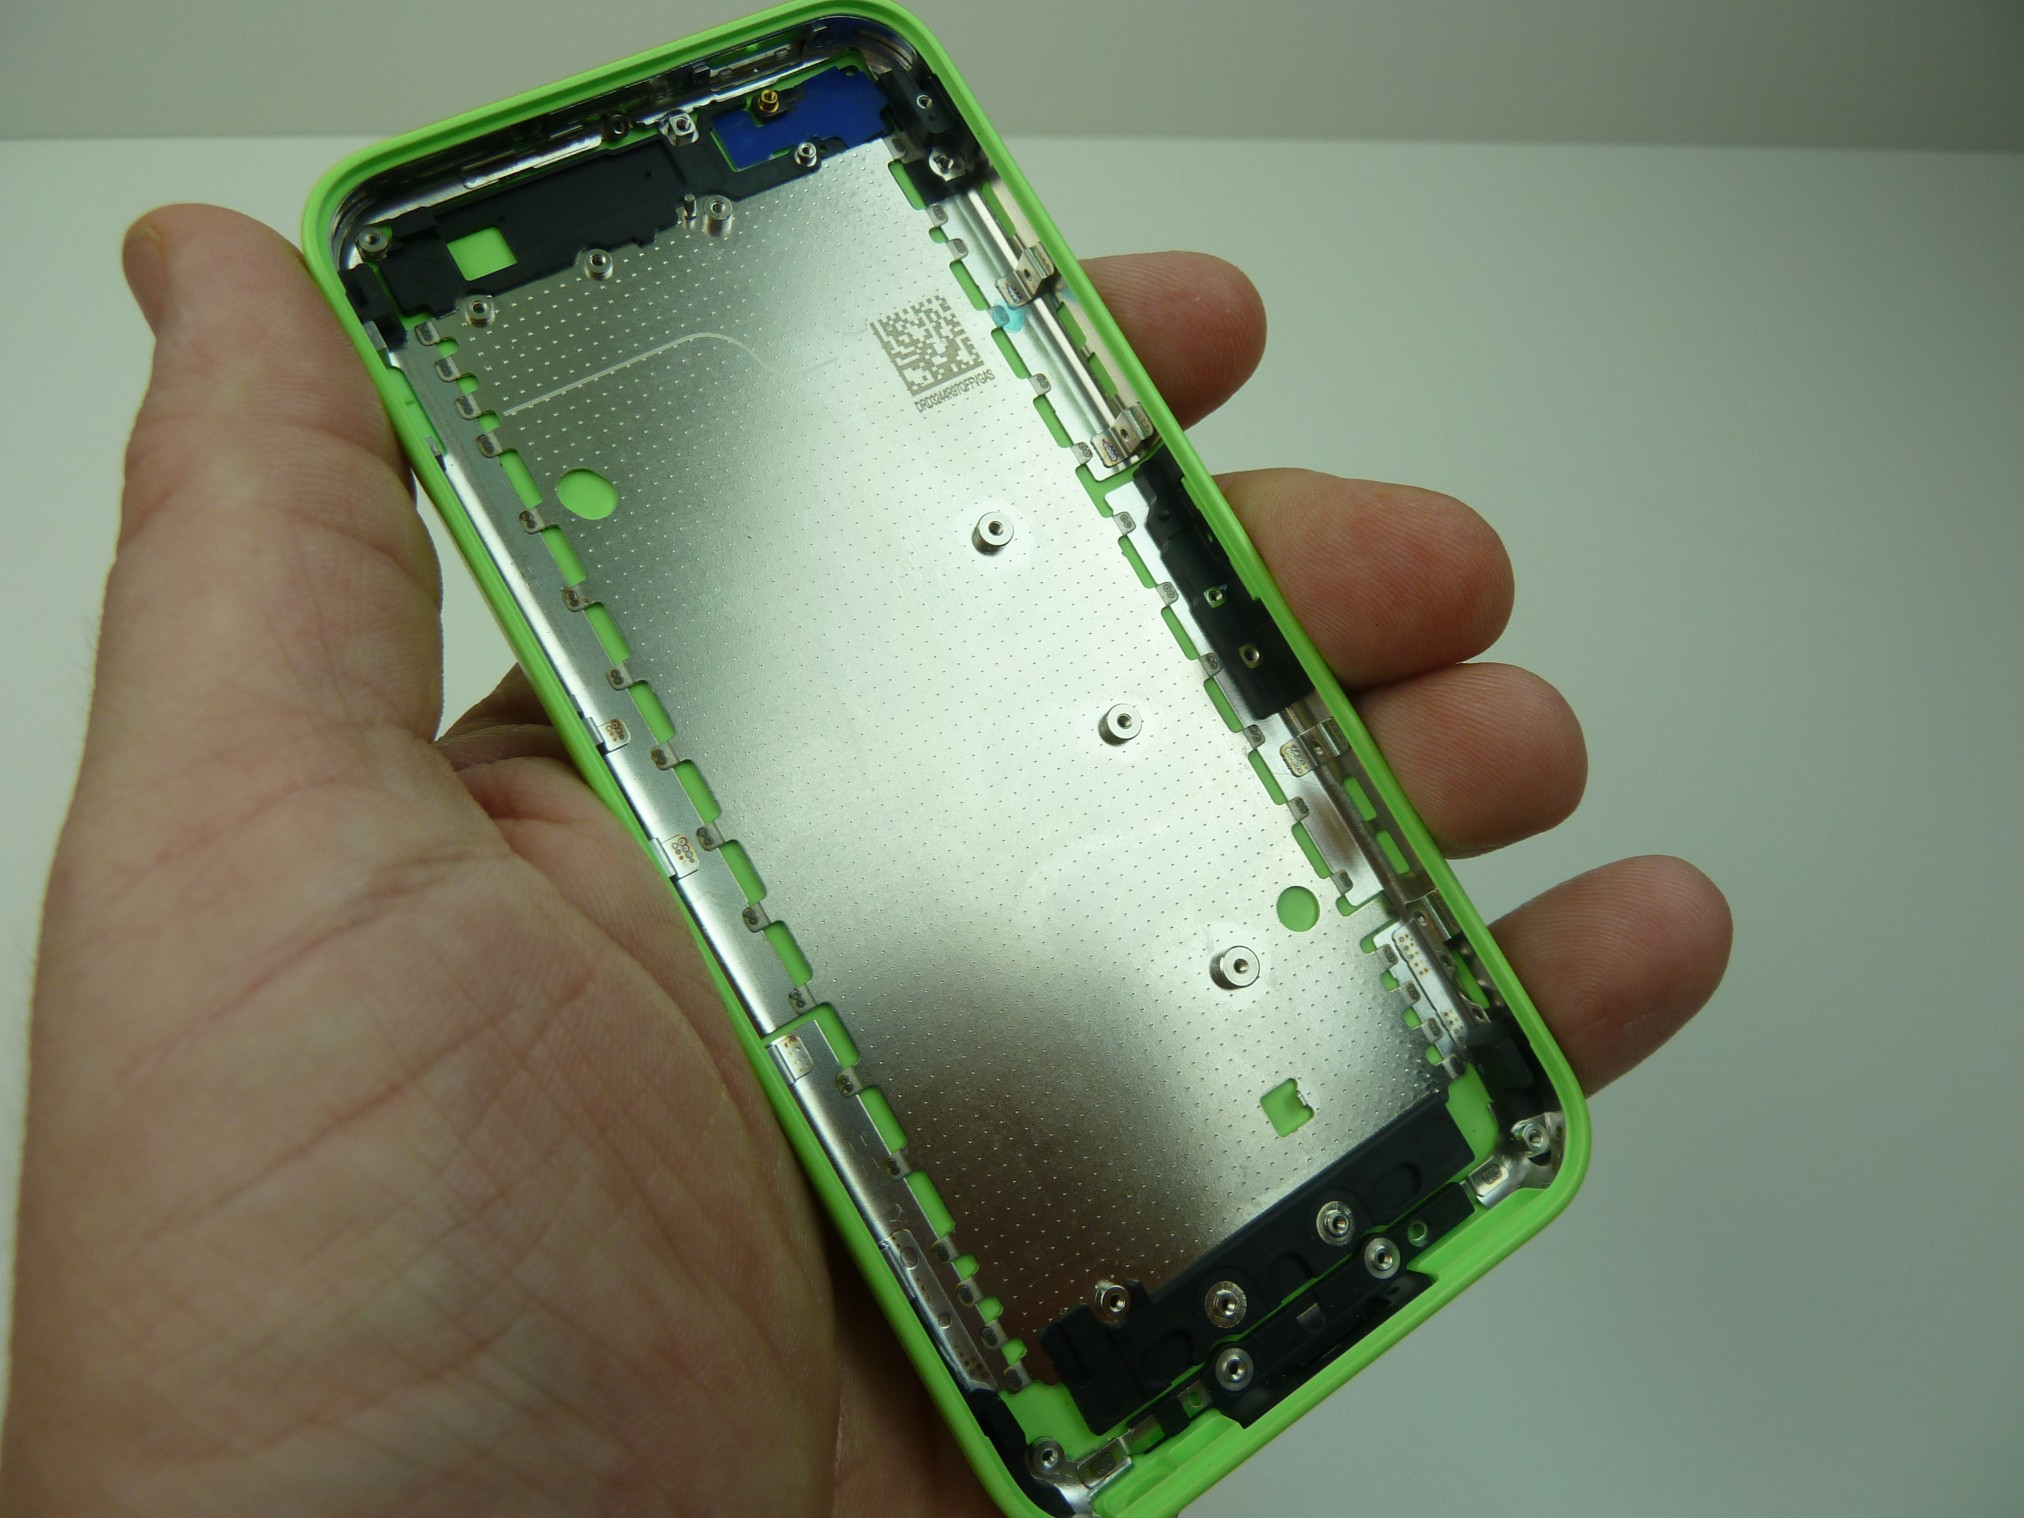 iPhone 5C internal